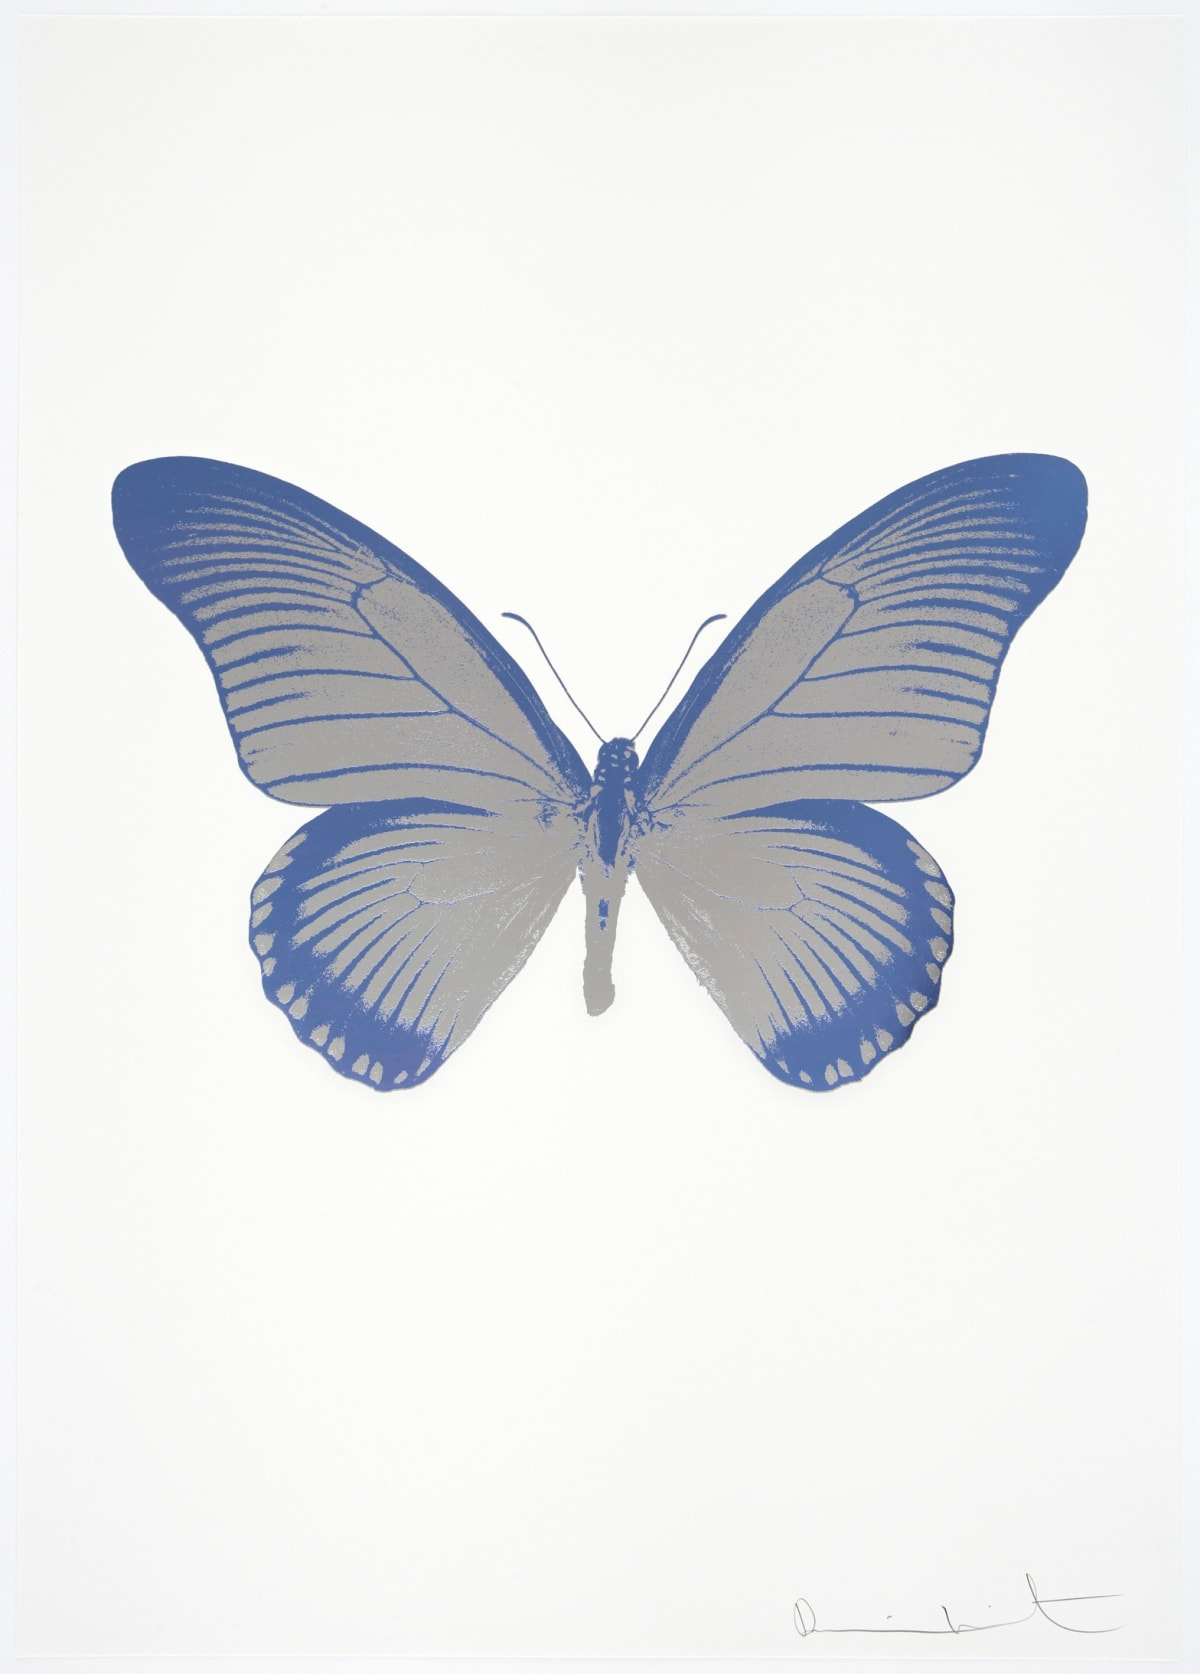 Damien Hirst The Souls IV - Silver Gloss/Cornflower Blue Damien Hirst butterfly foil print for sale Damien Hirst print for sale , 2010 2 colour foil block on 300gsm Arches 88 archival paper. Signed and numbered. Published by Paul Stolper and Other Criteria 72 x 51cm OC8043 / 1418-66 Edition of 15